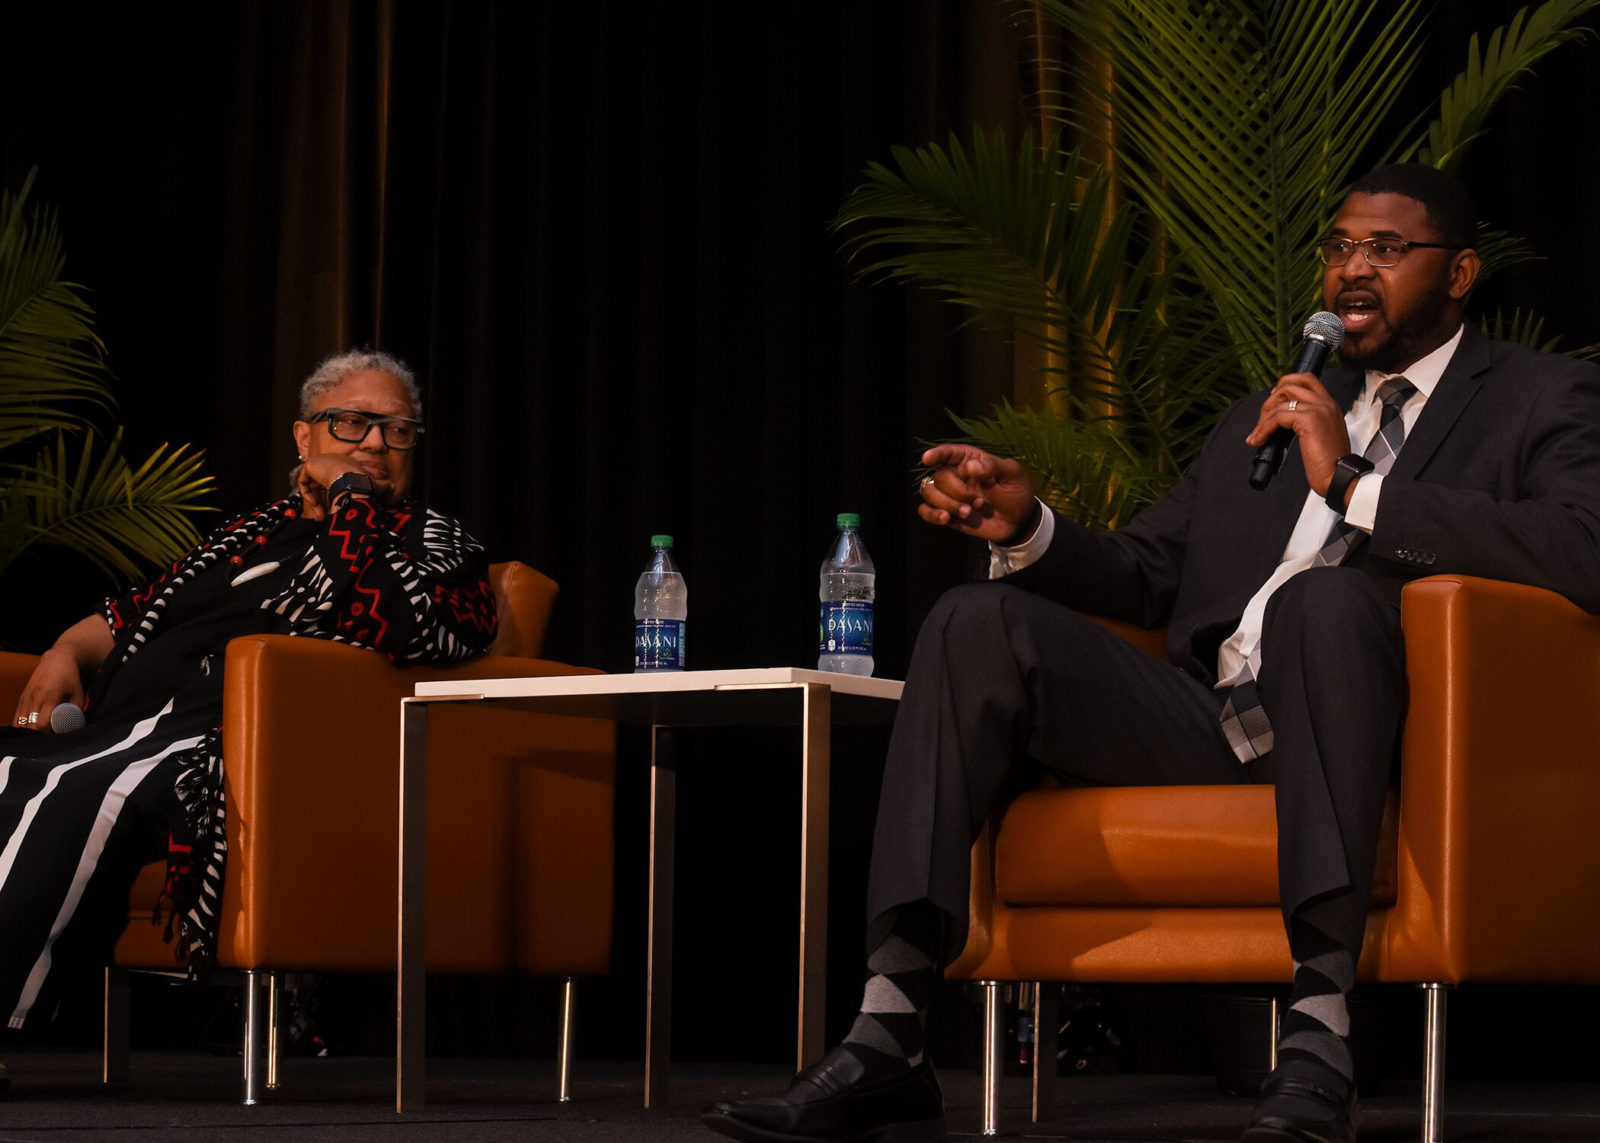 Dean Emilie M. Townes and Shan Foster during panel discussion. (Photo by Morgan Yingling)